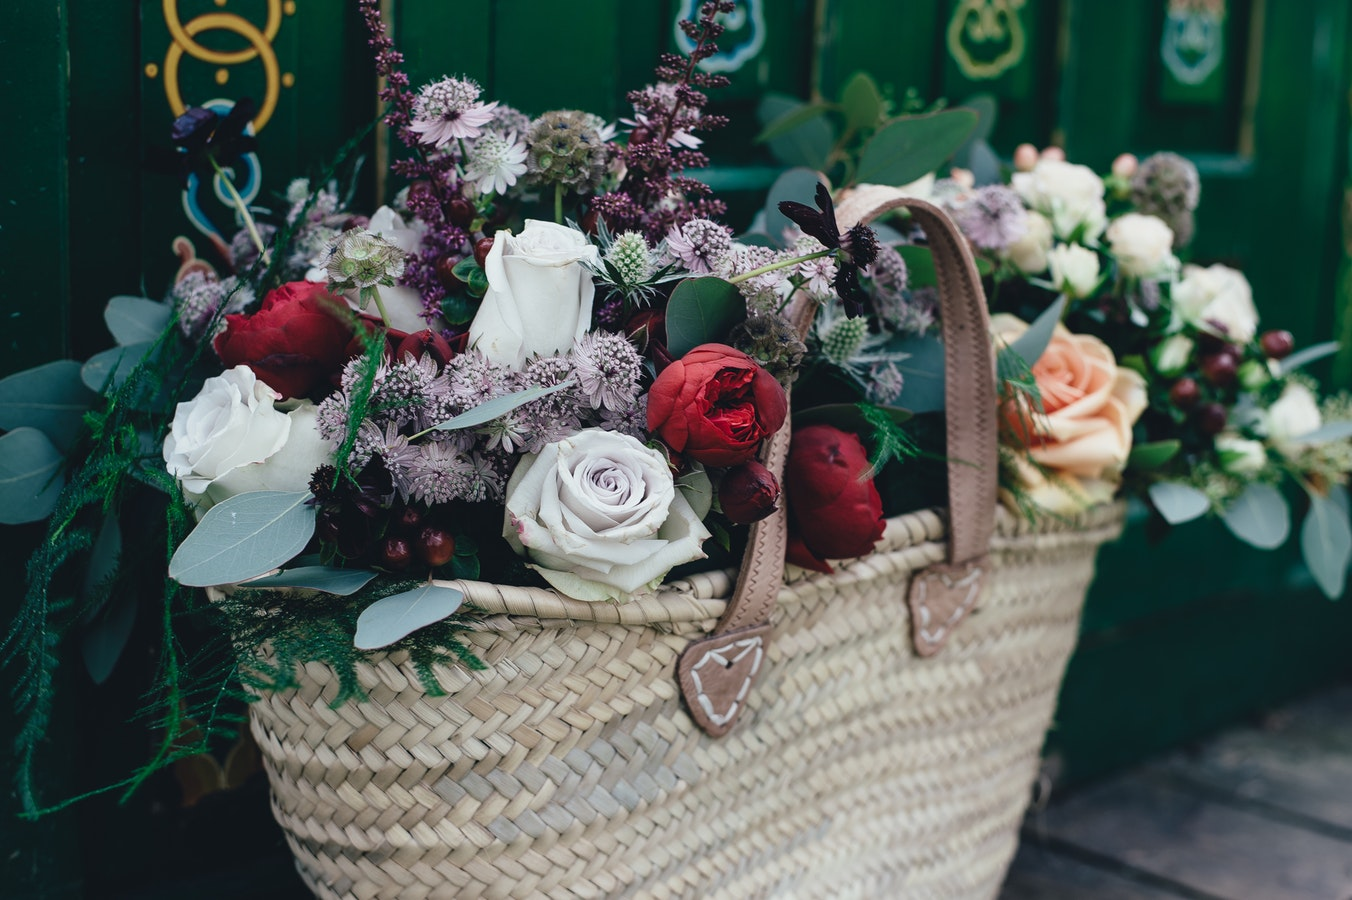 Why Online Flower Delivery Is A Wonderful Way To Surprise Close Ones